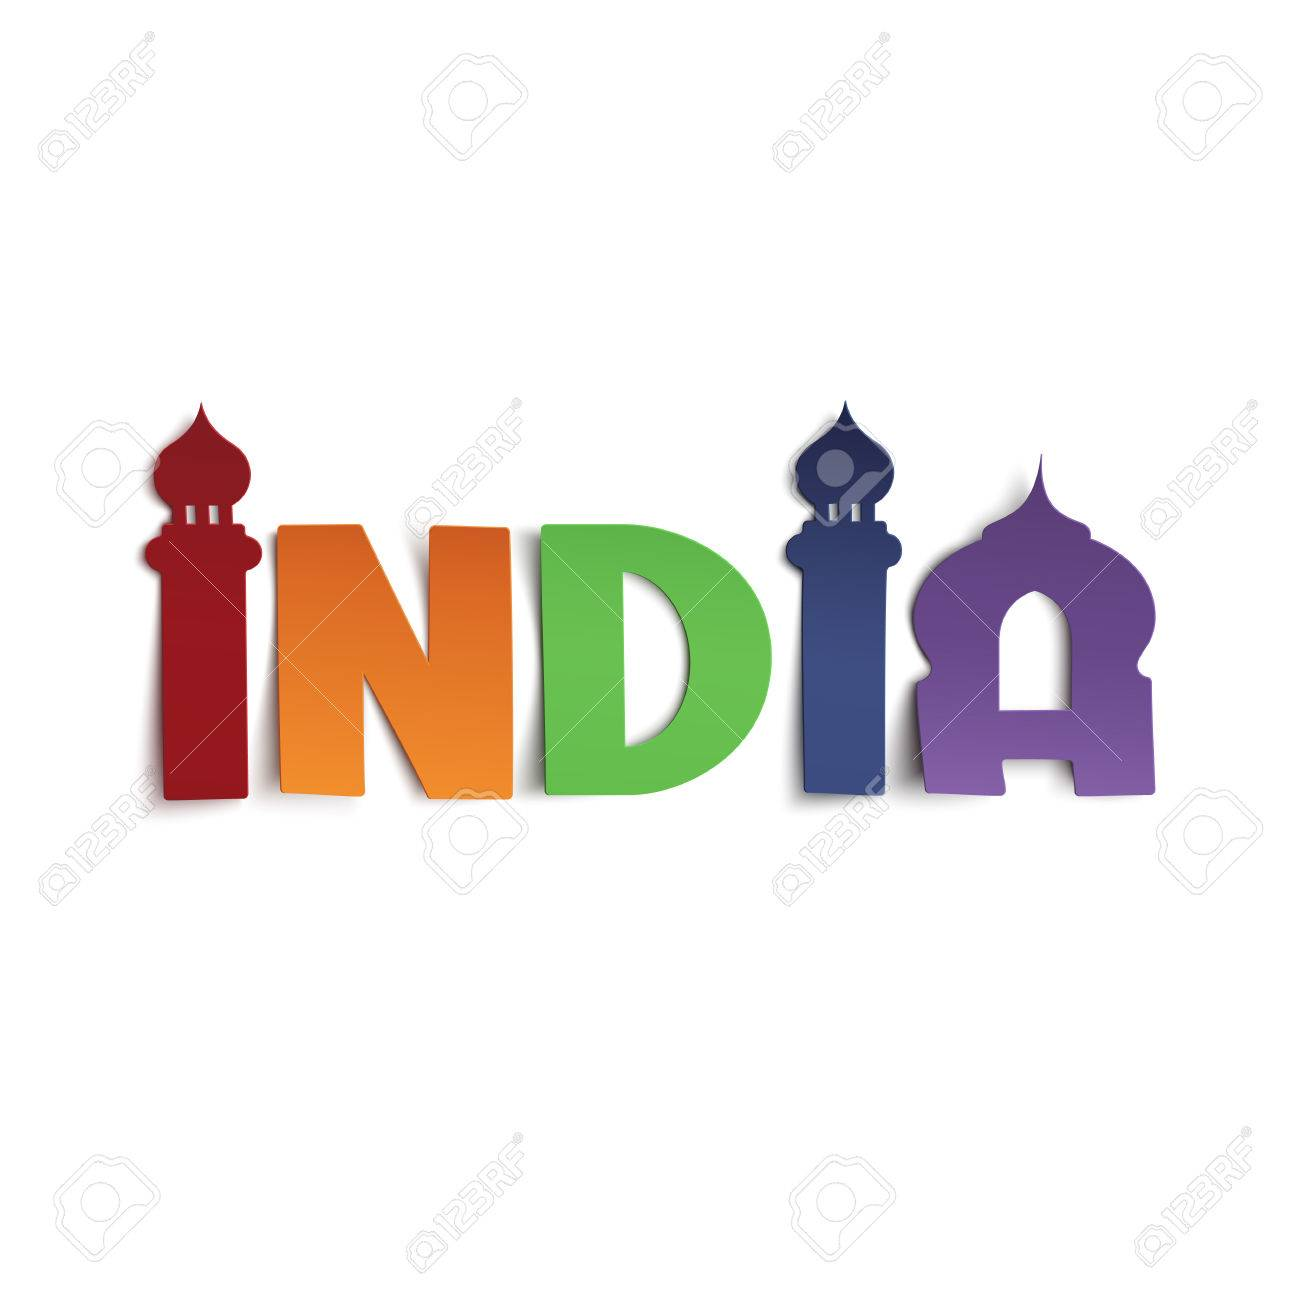 Indian Brand